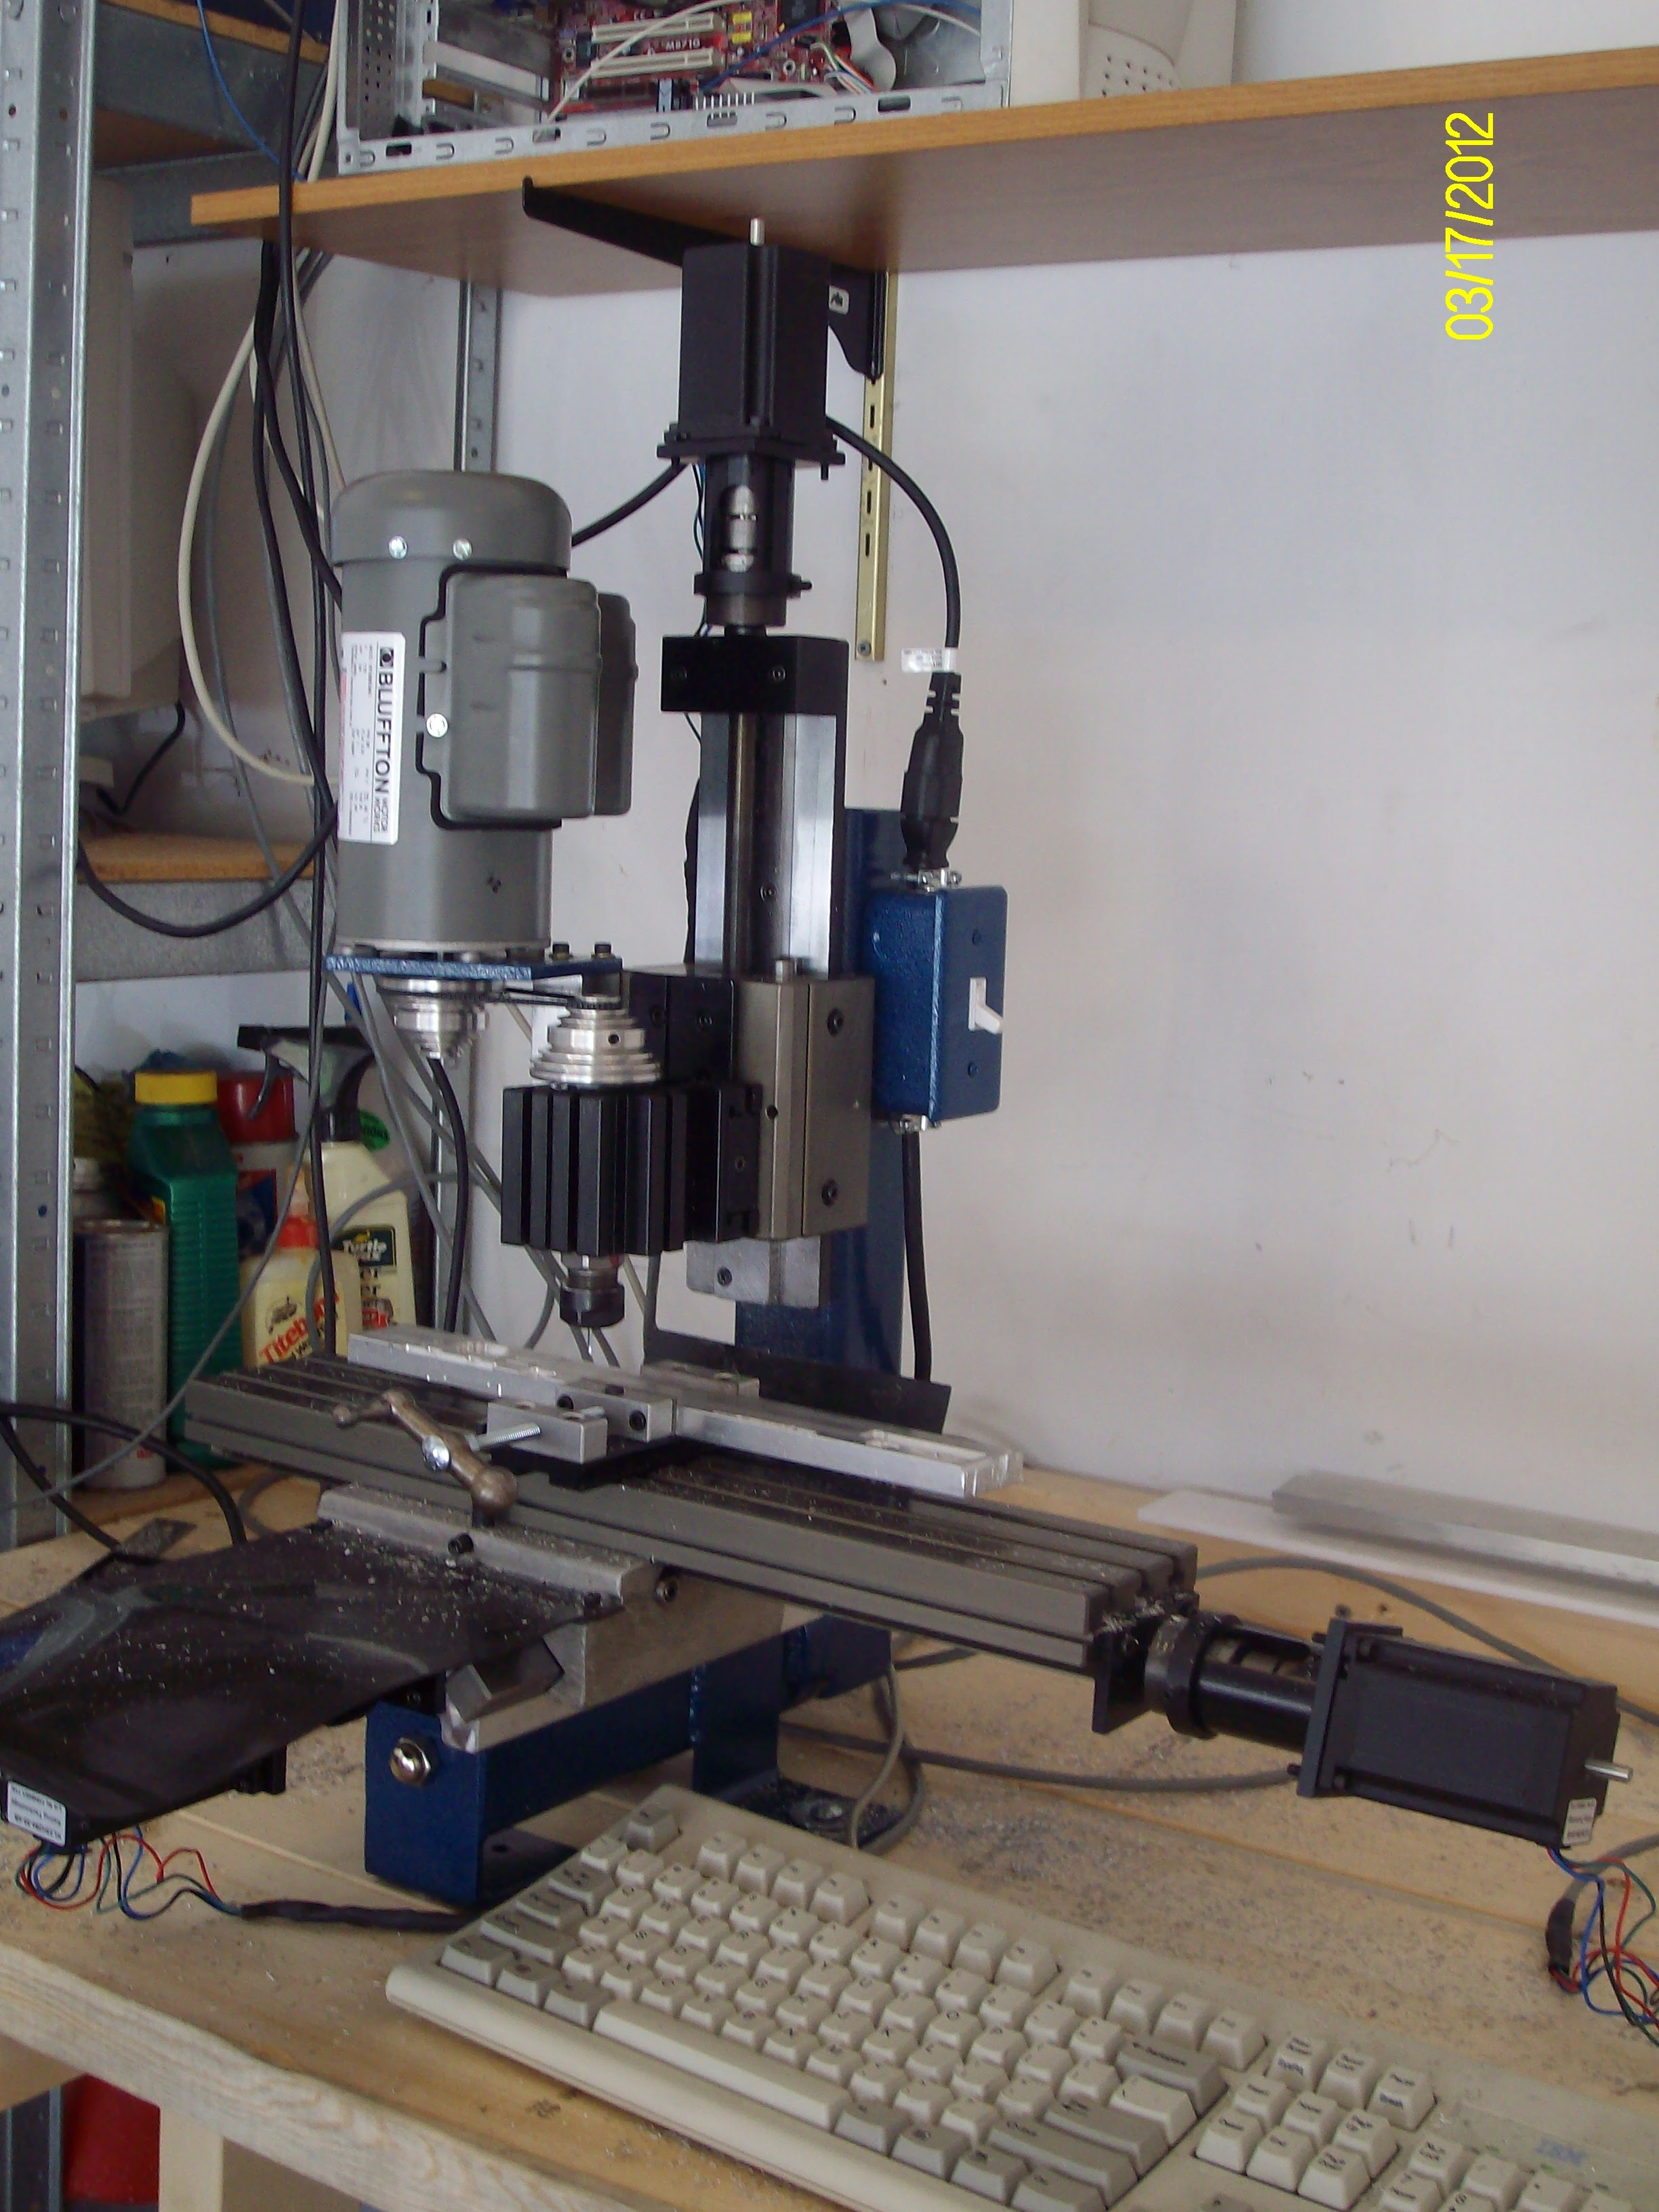 Taig CNC mini-mill close-up